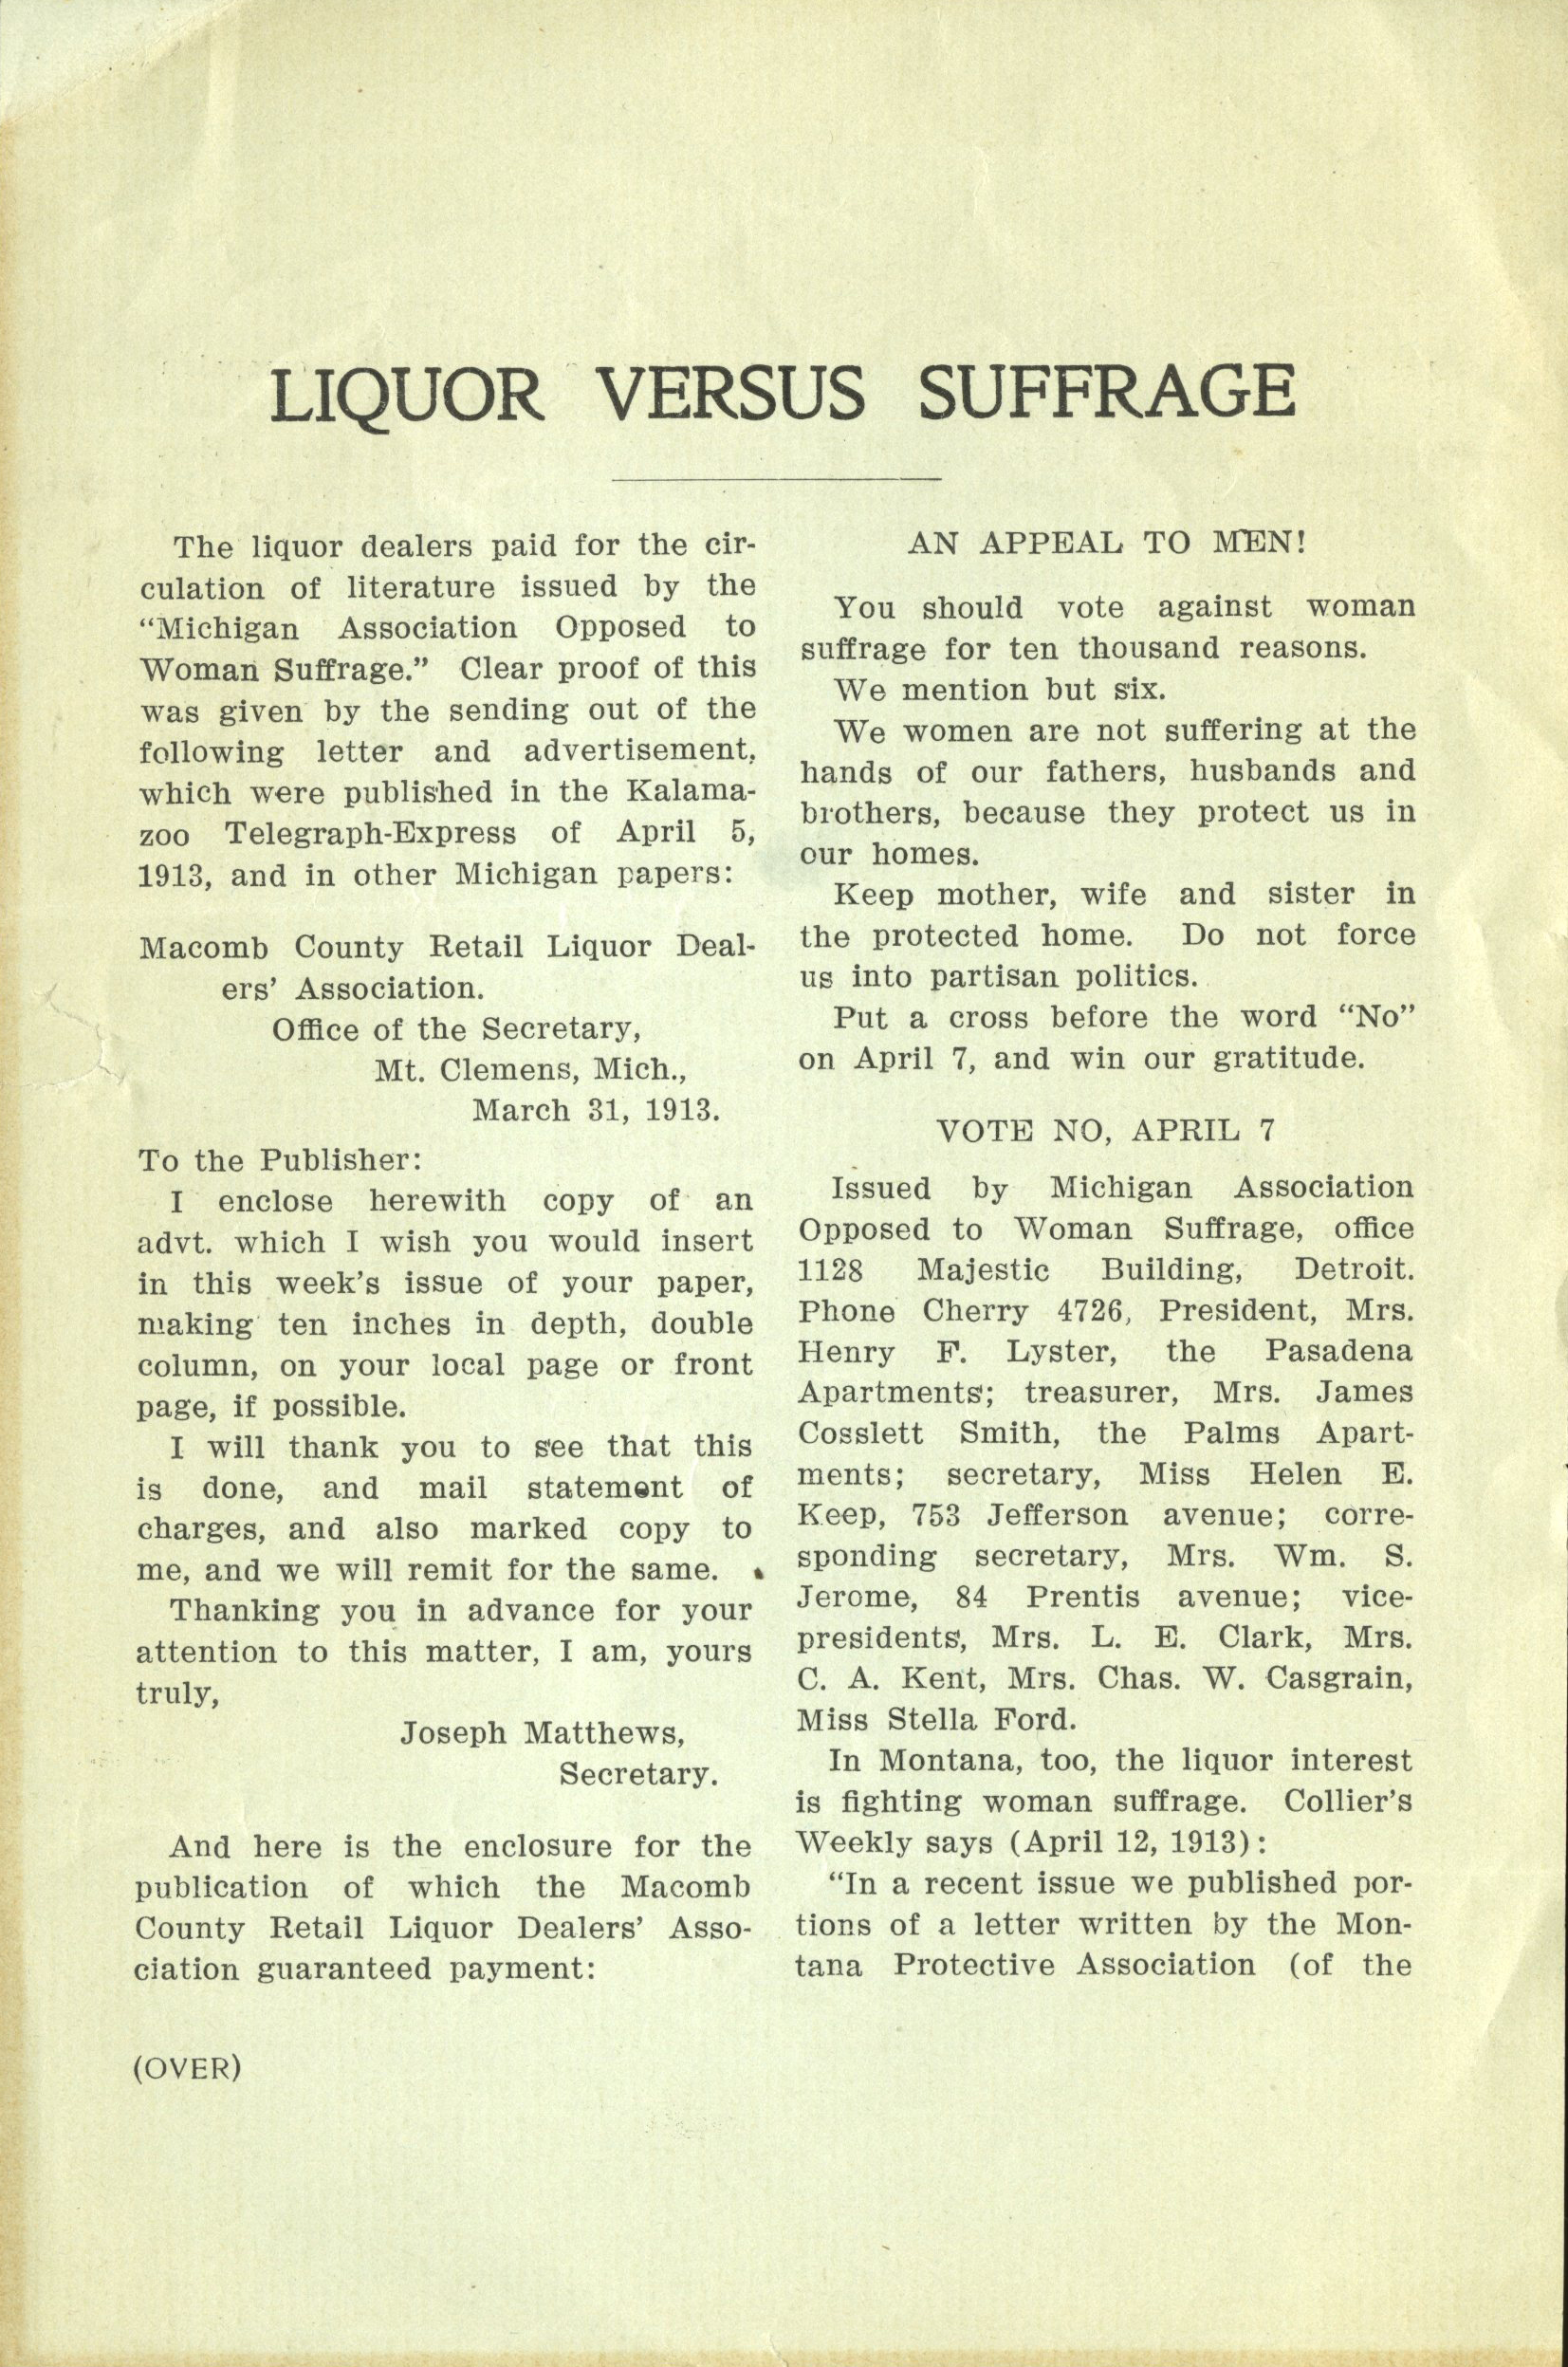 M9 B49 NAWSA Handbills and flyers_Liquor vs suffrage p1 crop.jpg